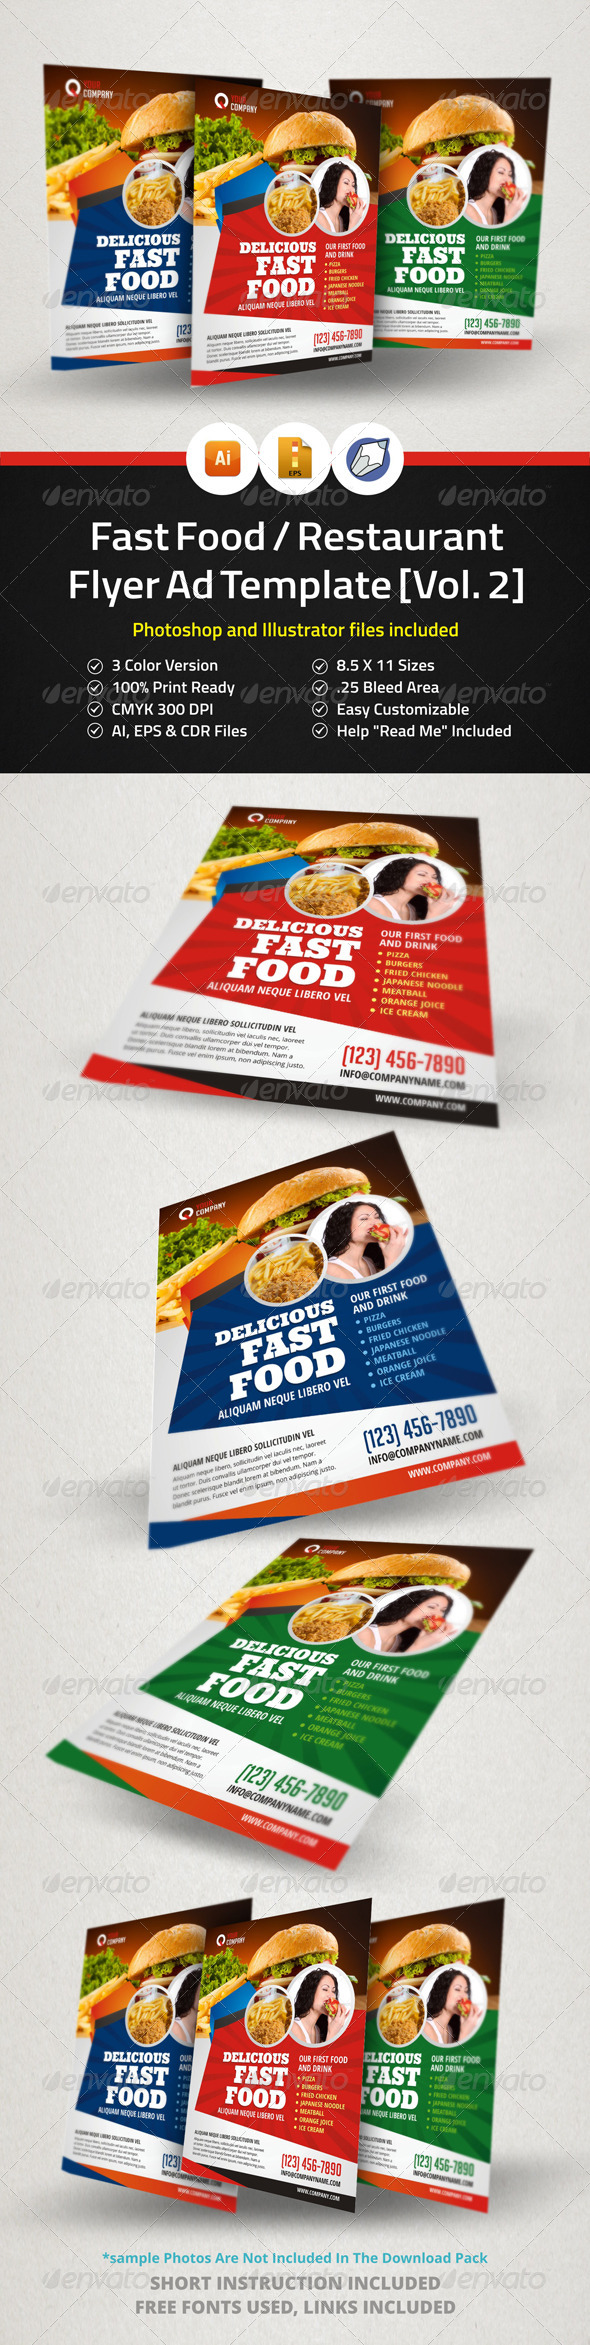 GraphicRiver Fast Food Restaurant Flyer Ad Template Vol.2 5955495